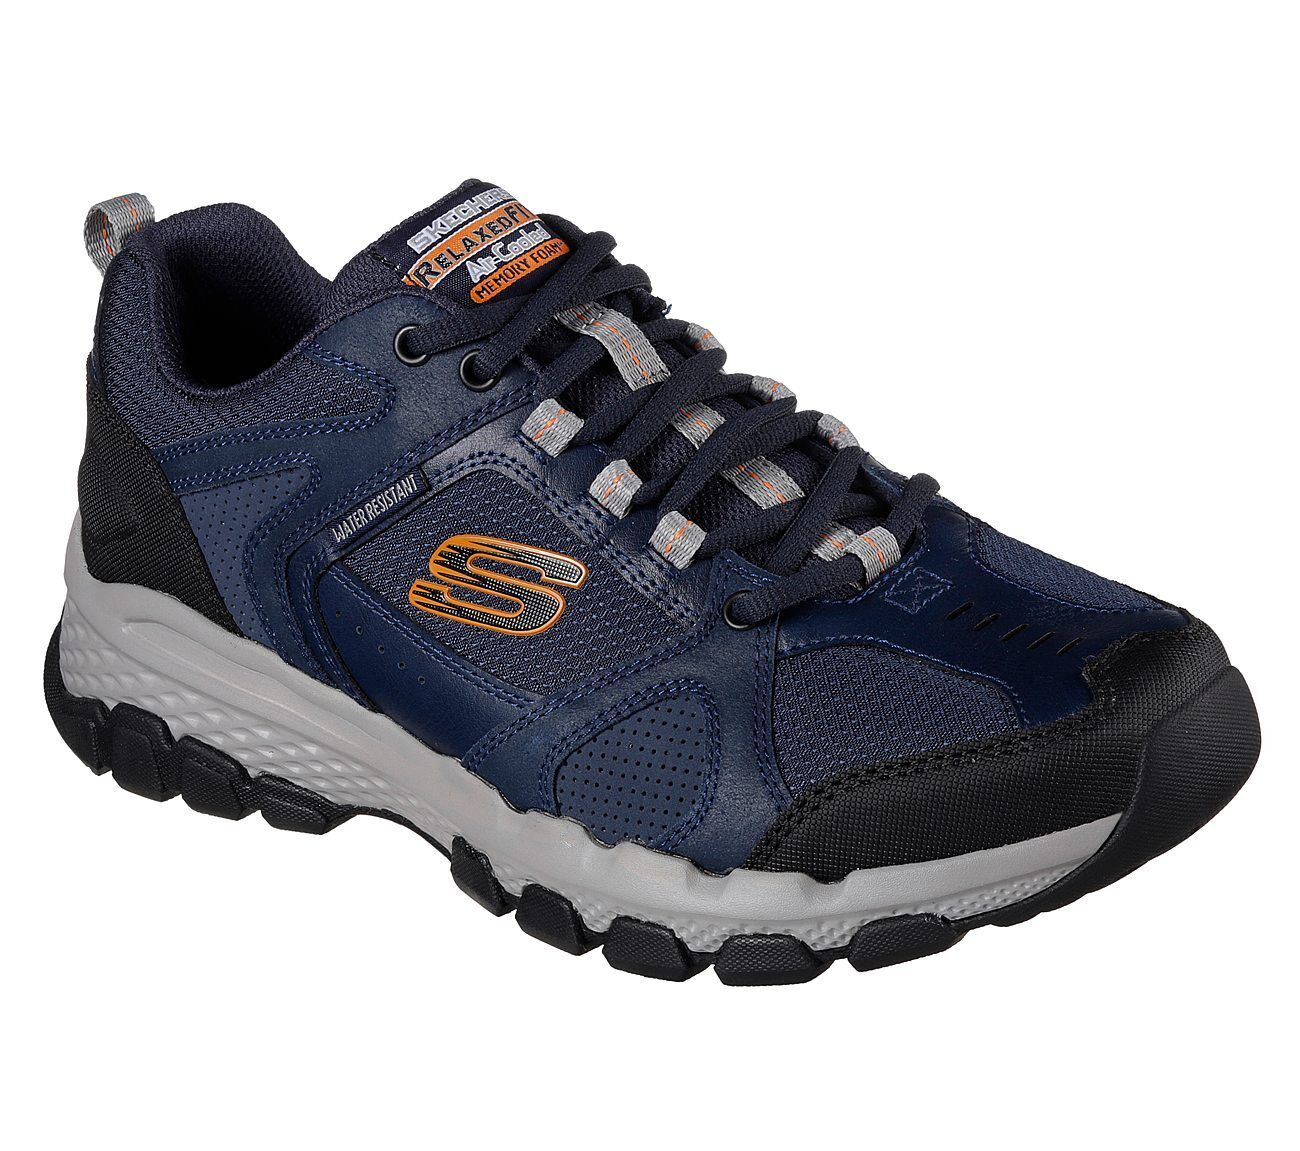 Scarpe casual da uomo 51586 Navy Skechers shoe uomo Memory Foam Sport Trail Hiking Comfort Casual